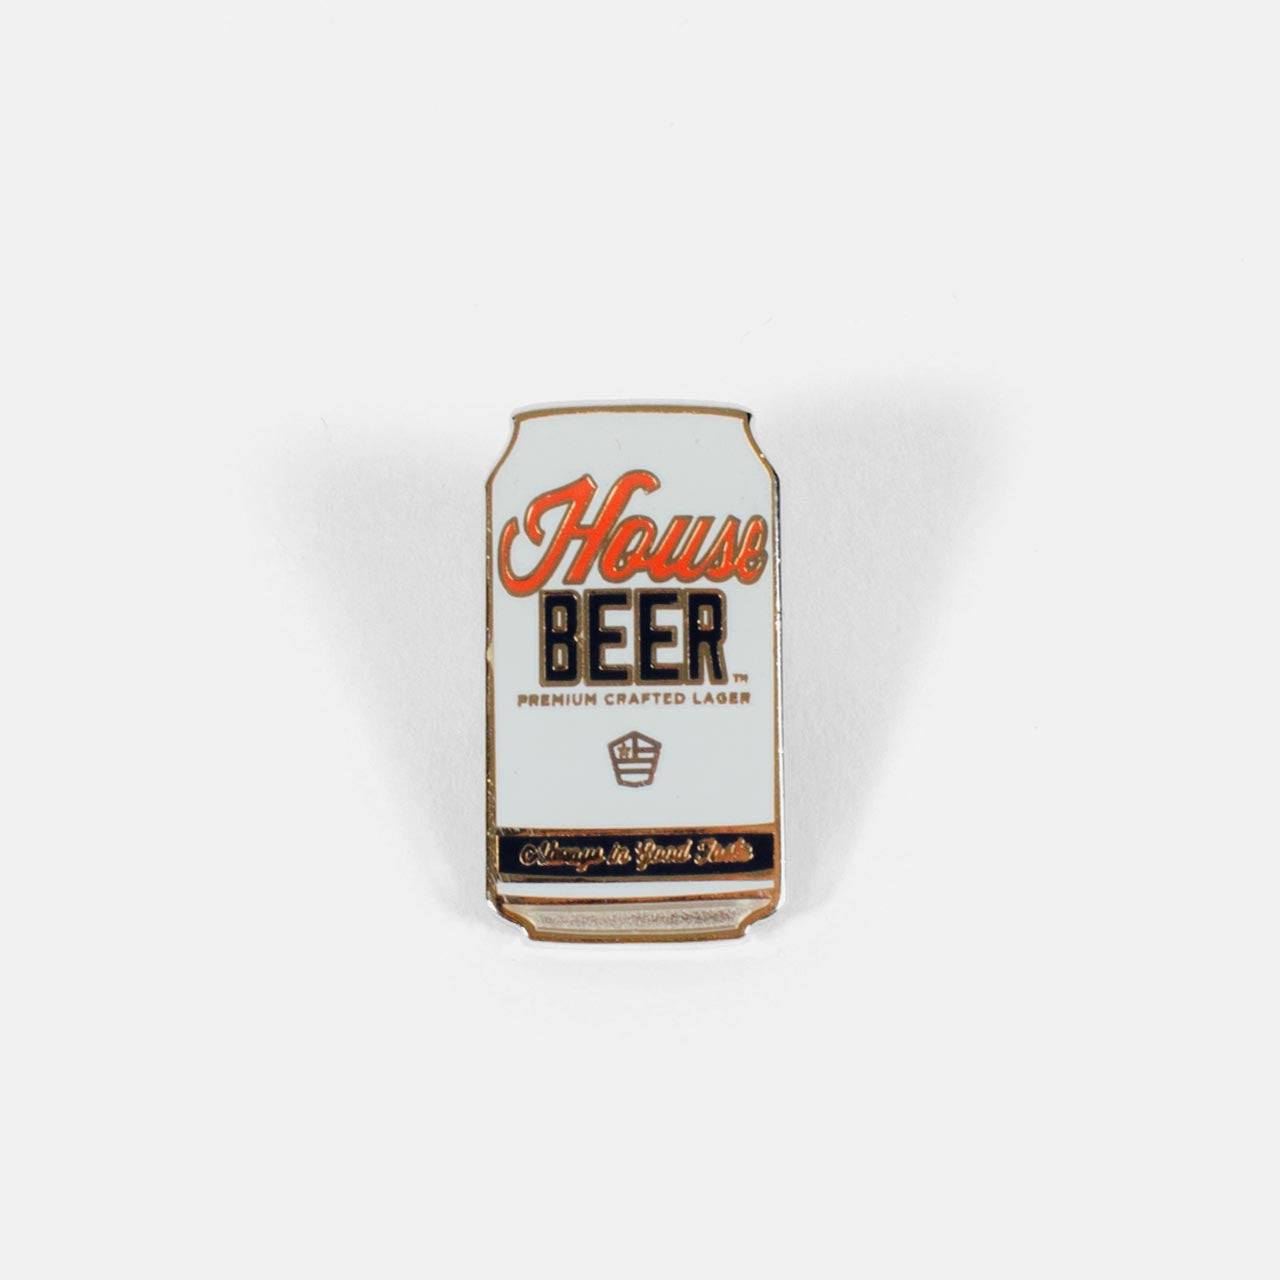 House Beer - Enamel Pin